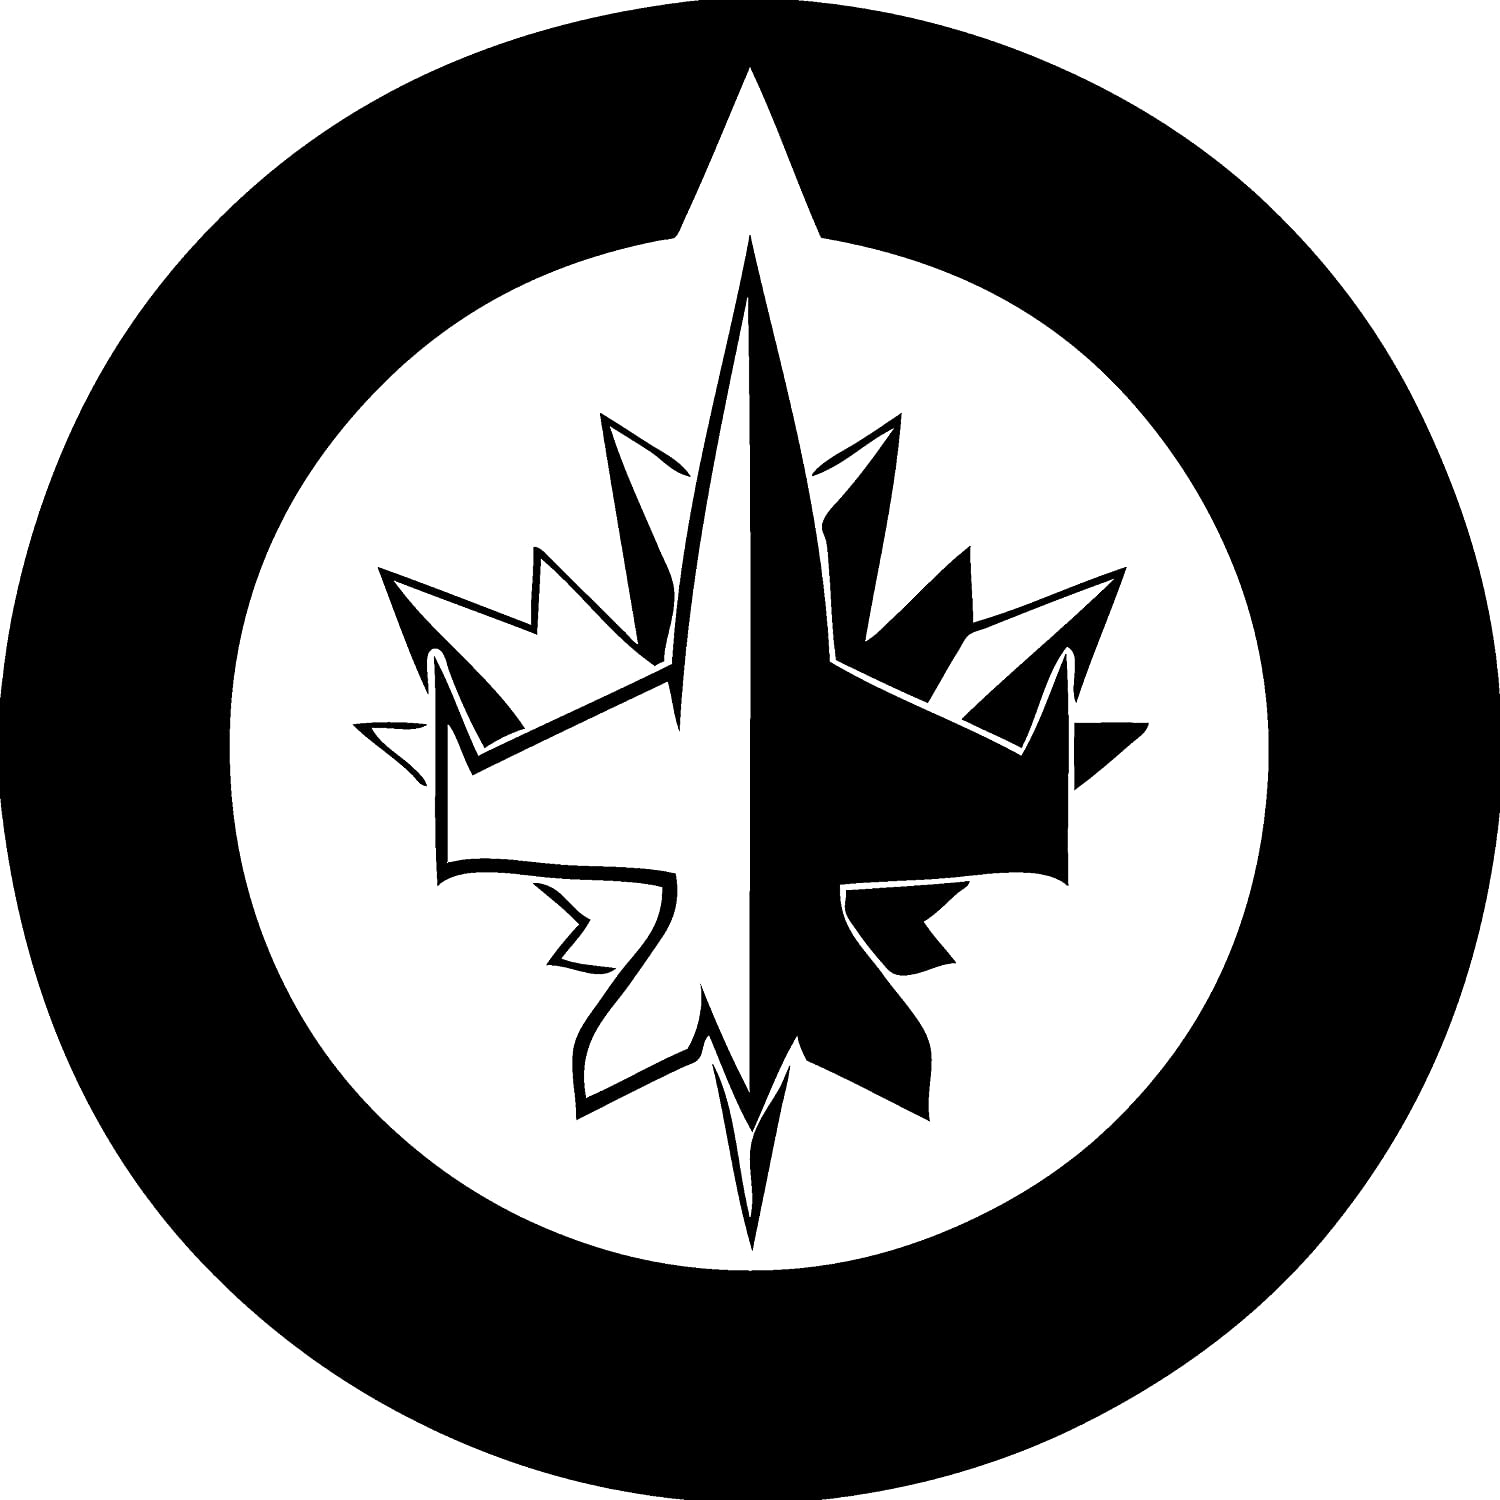 New winnipeg jets decal decal sticker for car or truck windows laptops etc amazon ca automotive